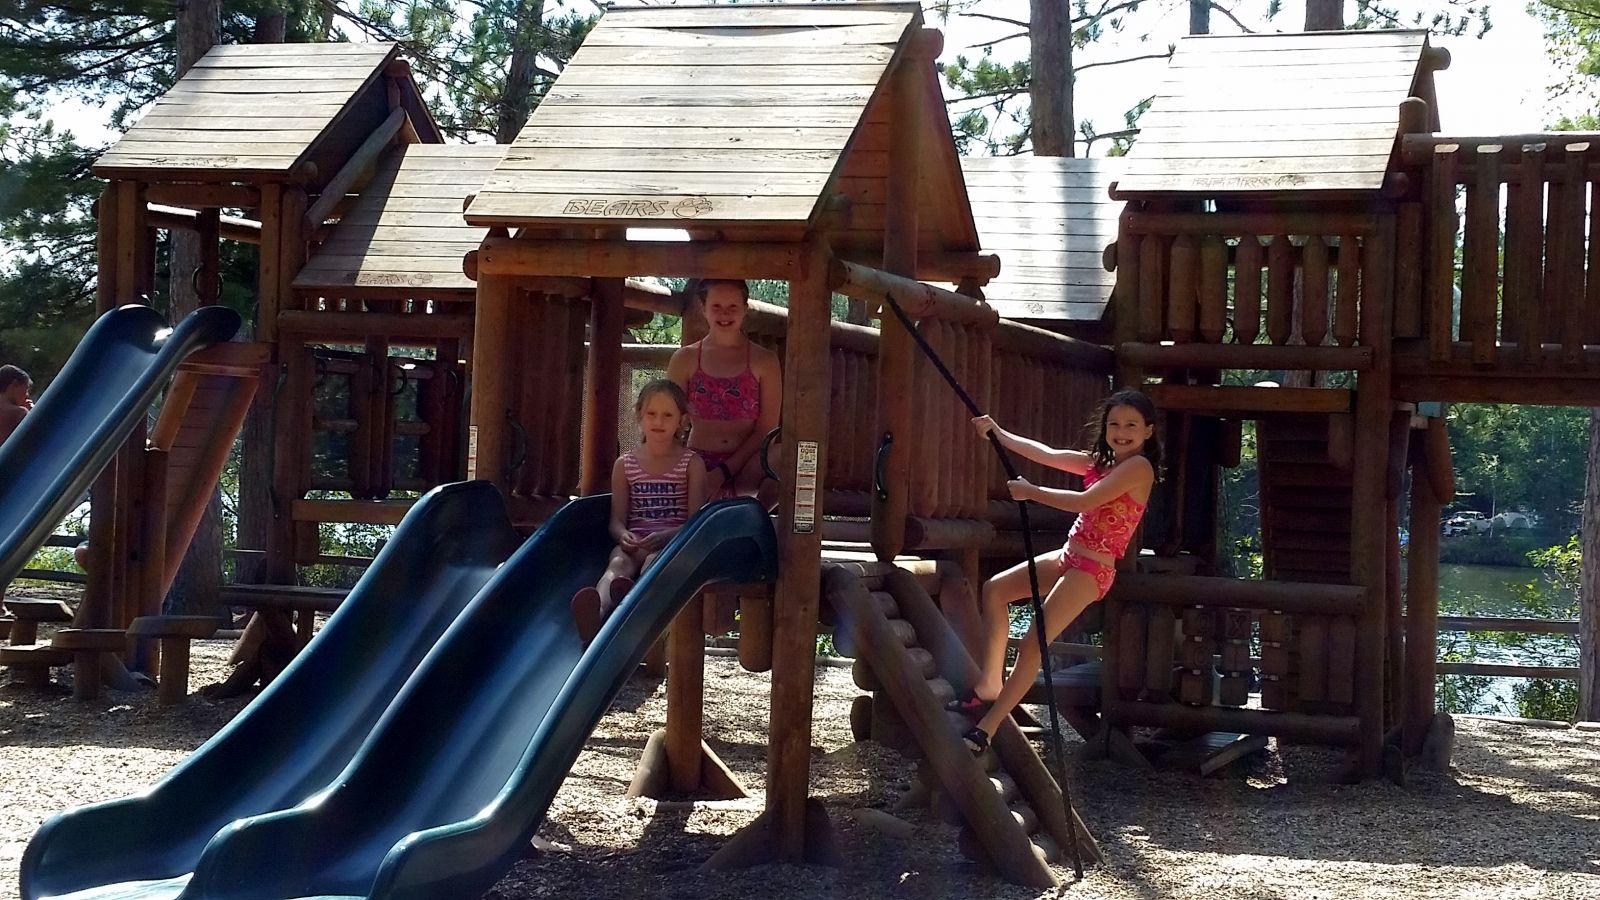 Sisters from the Albany area enjoying the Fish Creek playground